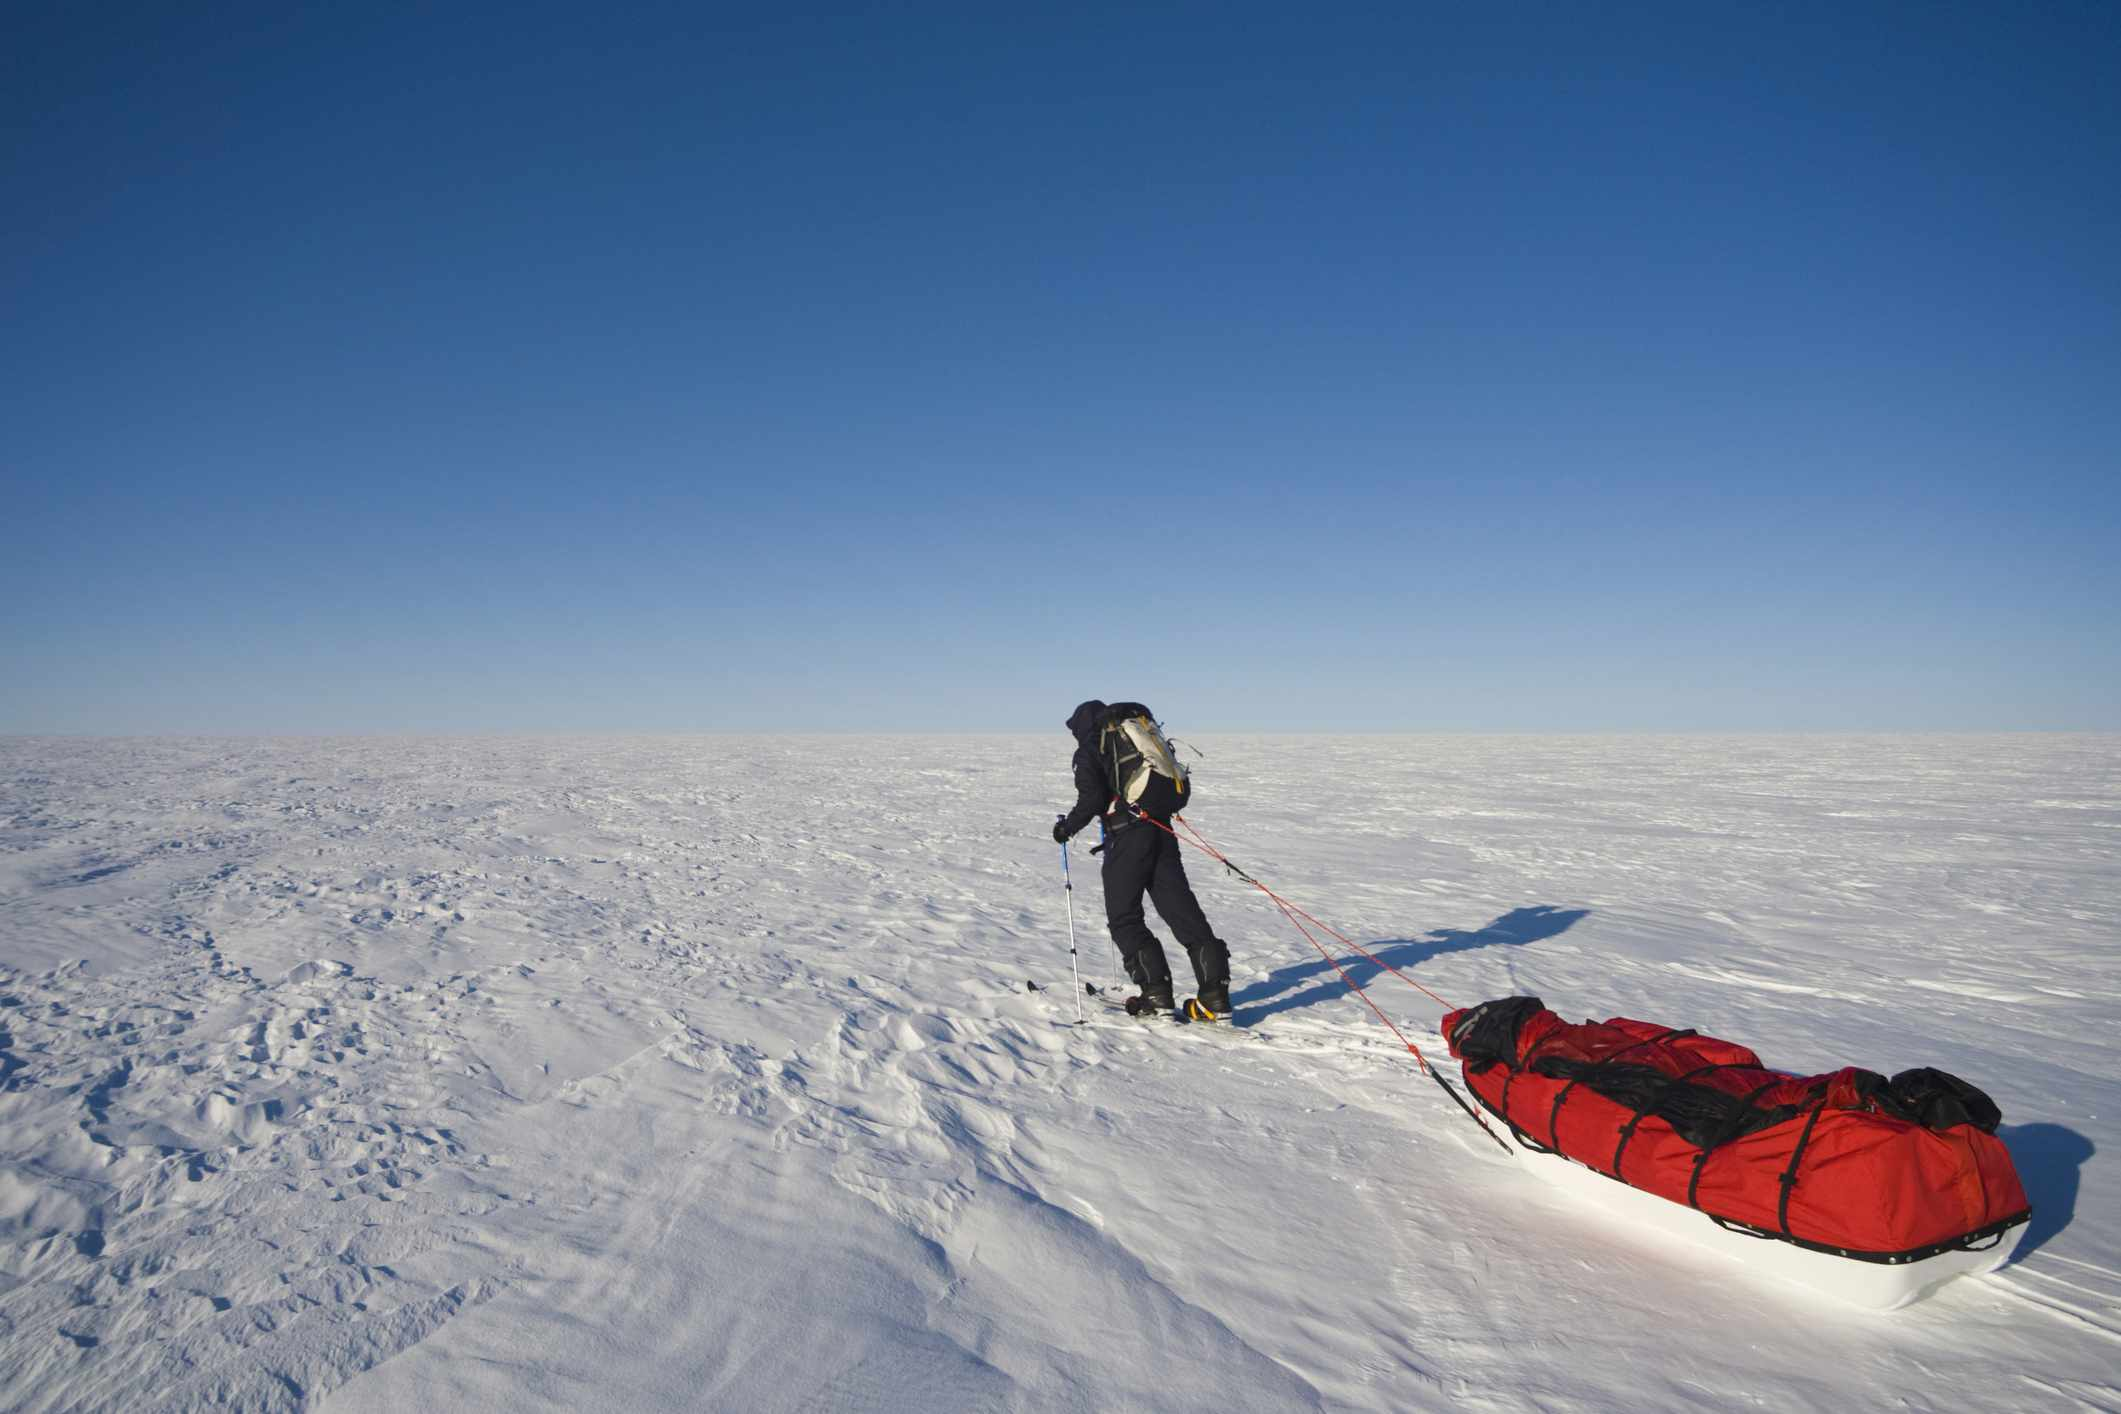 A researcher pulls his gear across a vast snow-covered ice sheet.